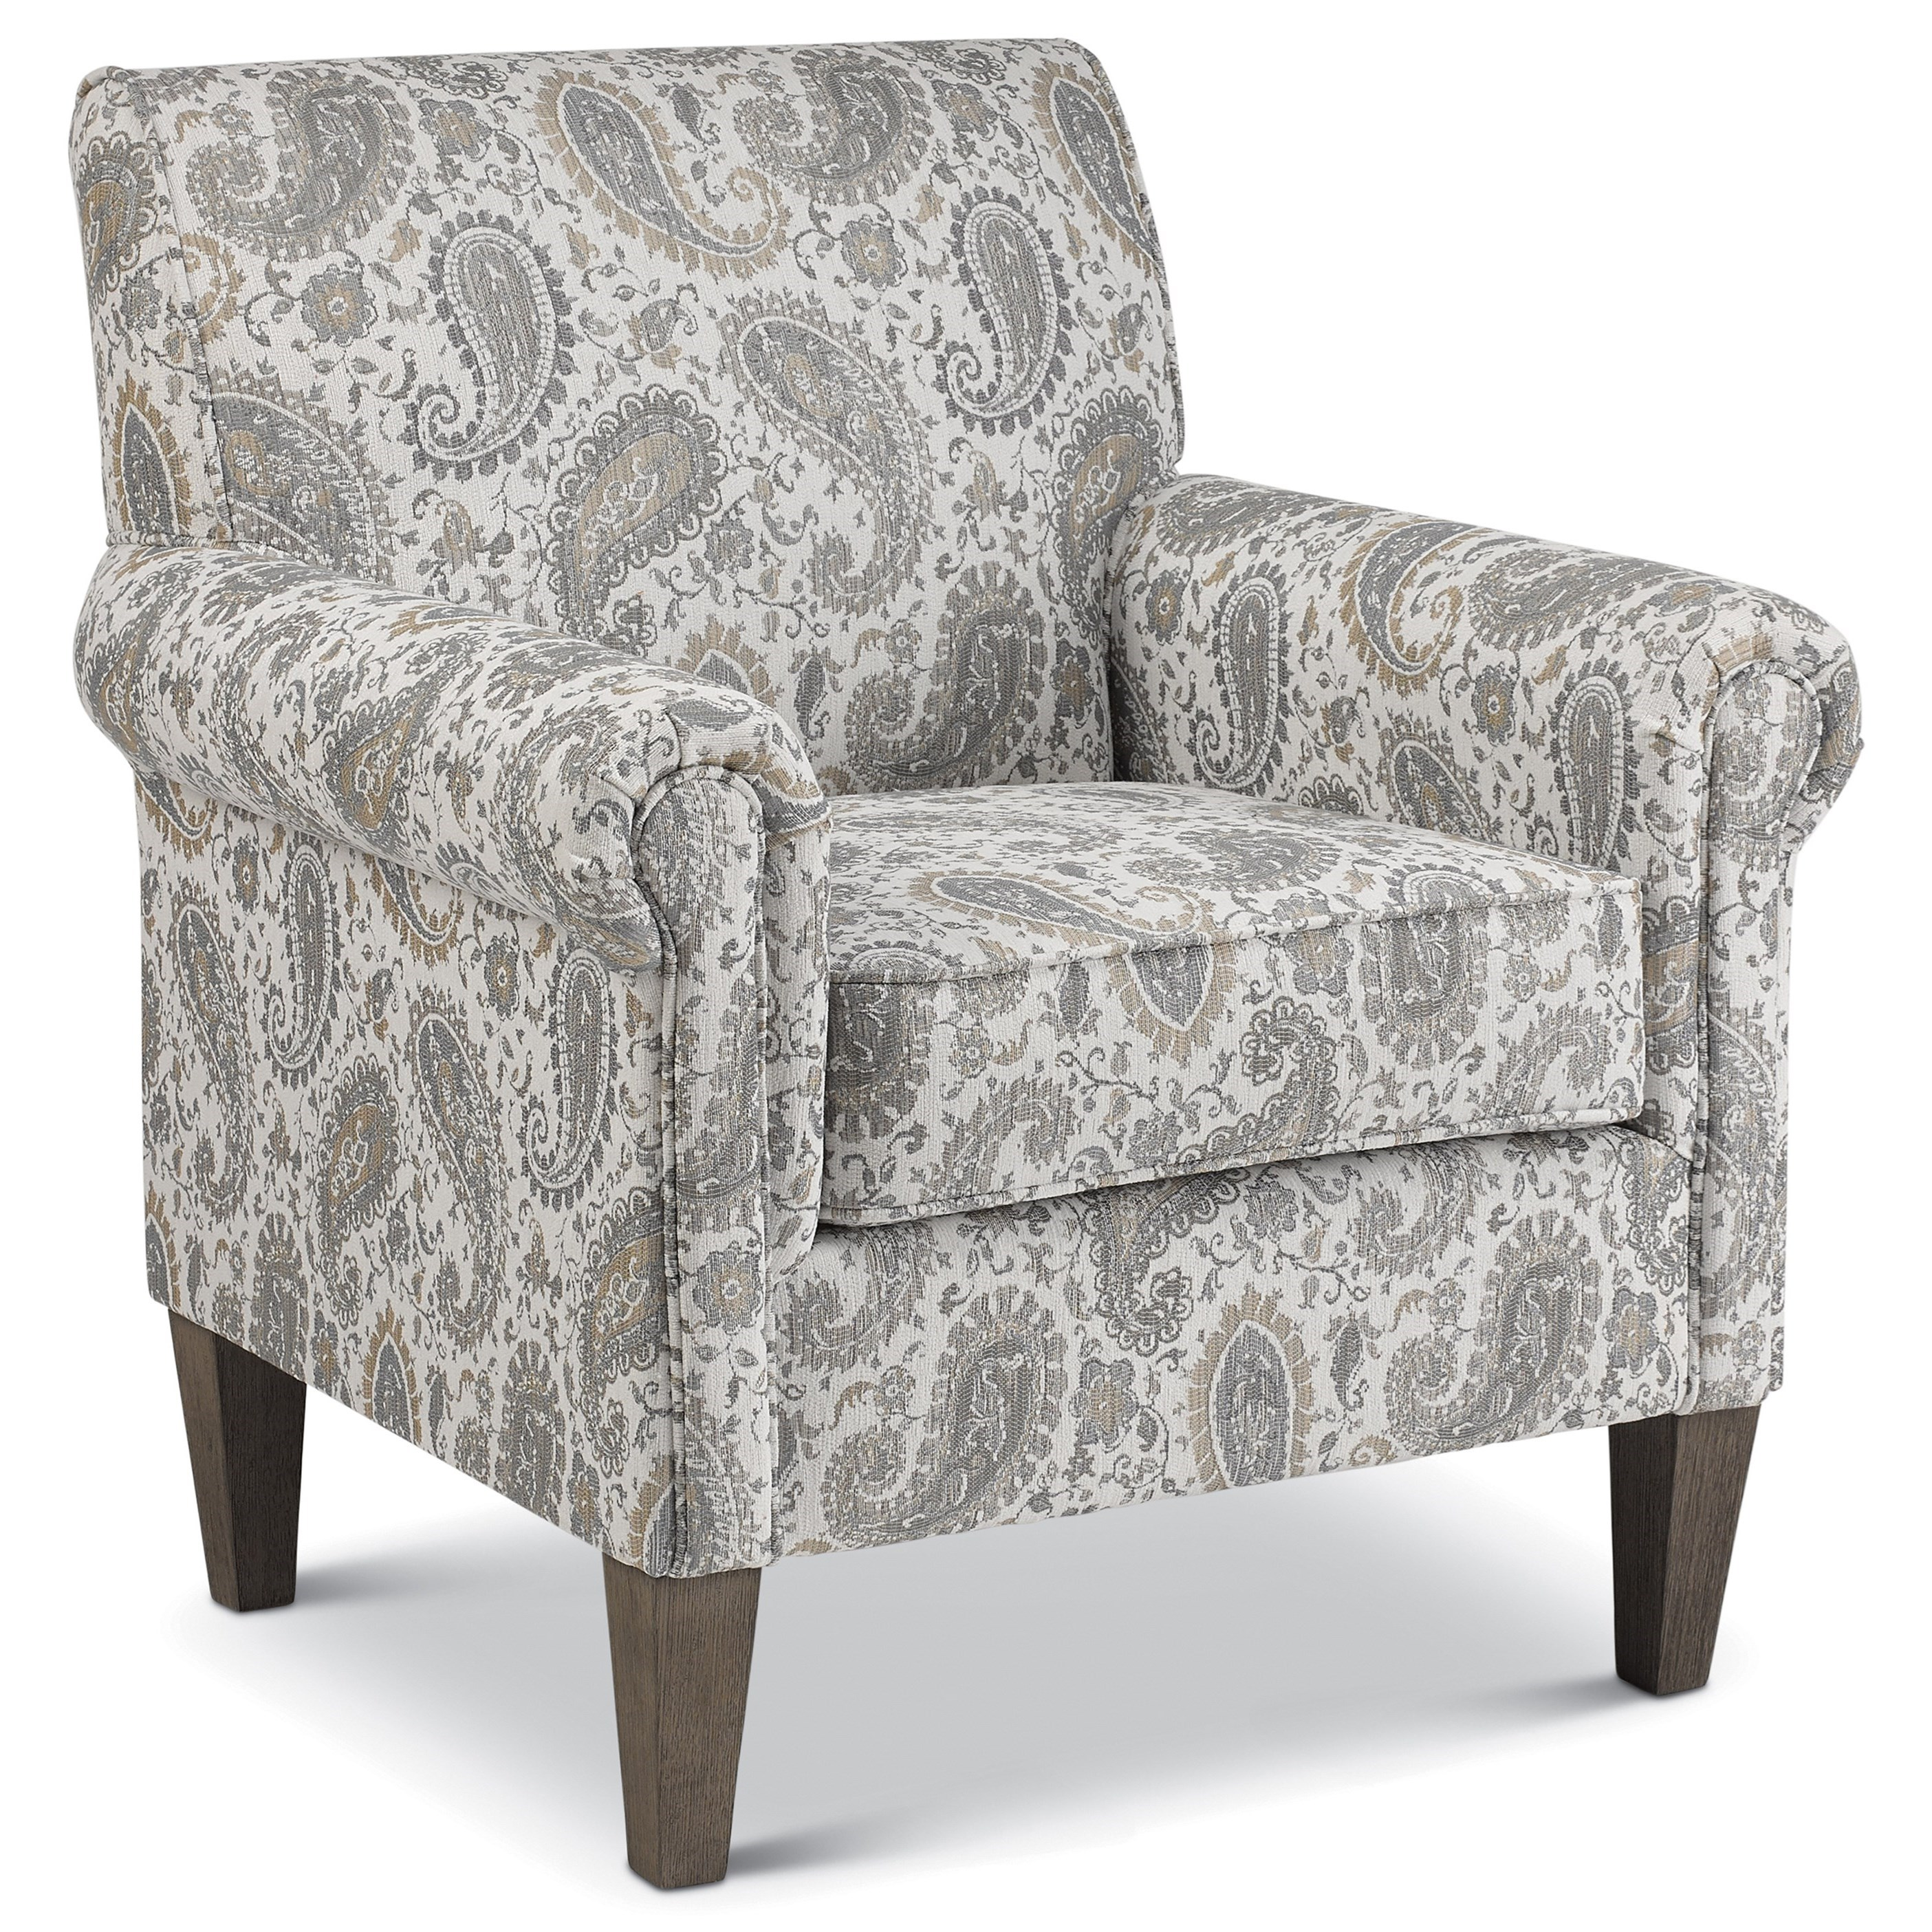 McBride Club Chair by Best Home Furnishings at Goods Furniture